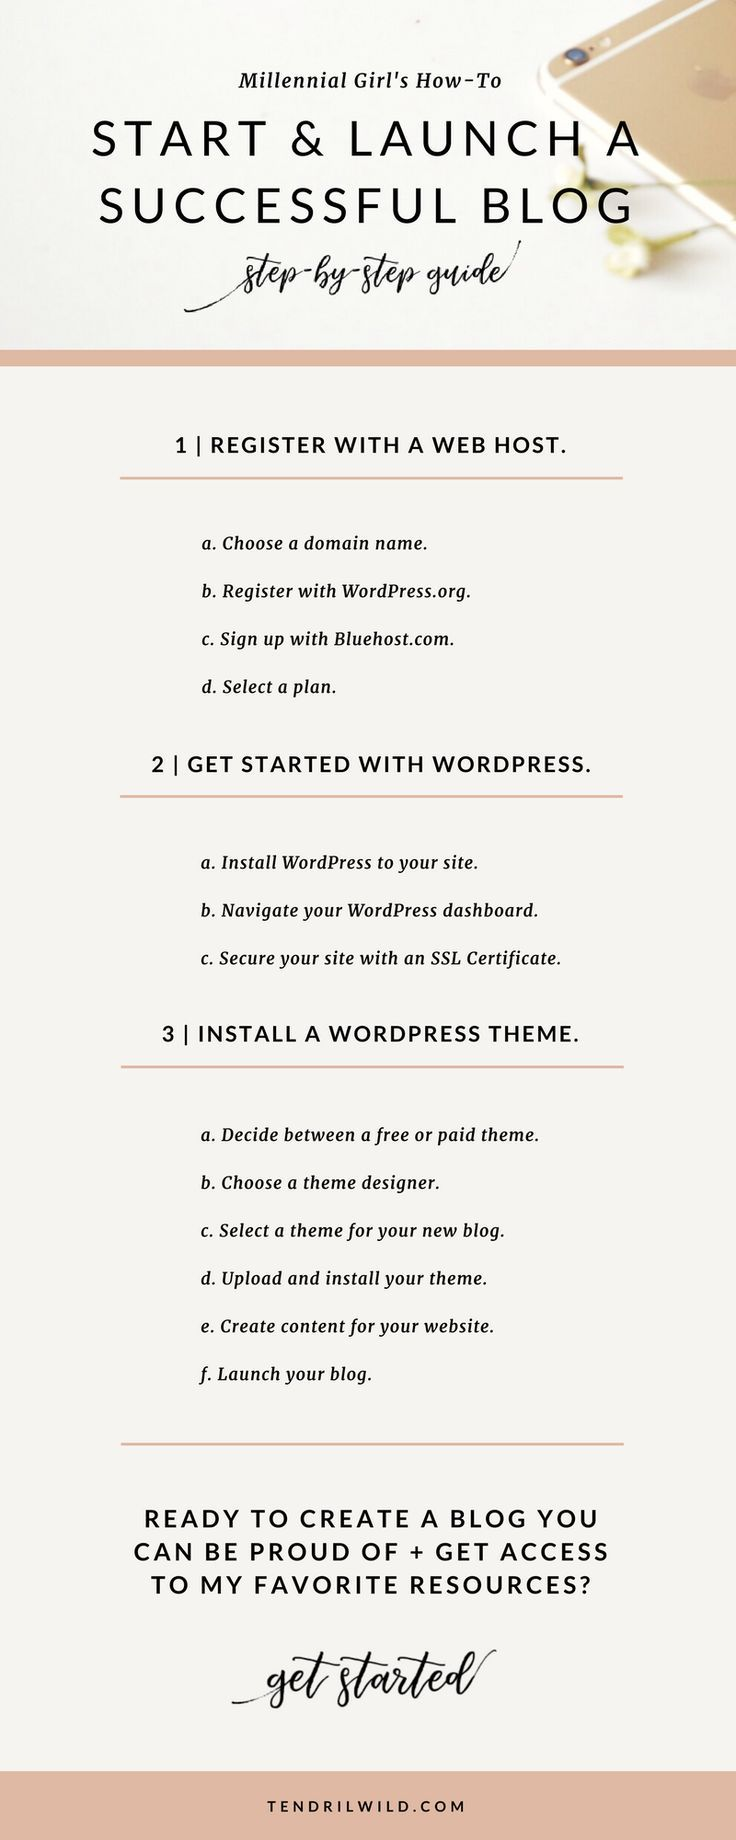 [This blog post contains affiliate links.] Starting a successful blog doesn't have to require a lot of money or time up front. This quick and easy tutorial will show you exactly how to start a WordPress blog and have it up and running in 30 min or less!   Blogging #Tutorial   WordPress Tutorial   How to Start a #WordPress Blog   Create a Blog in 2017   Comprehensive WordPress Guide   Step-by-Step WordPress Guide   #Blogging Guide   Blogging for Beginners   Popular Blogging Resources